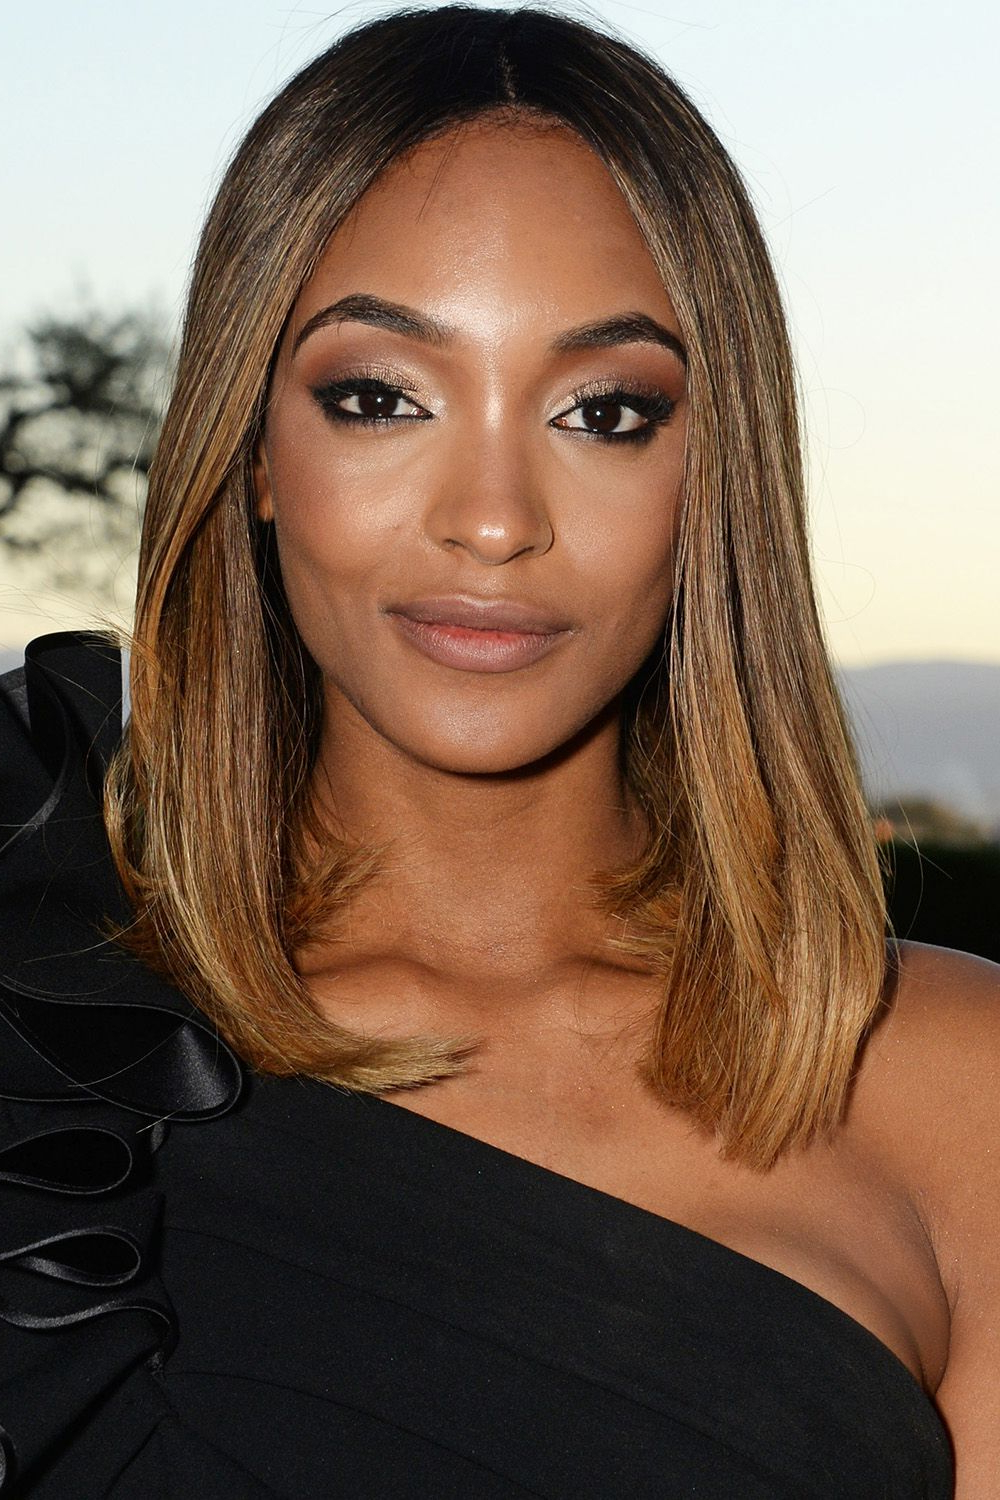 Trendy Sleek Mid Length Haircuts With Shaggy Ends In 50 Best Medium Hairstyles – Celebrities With Shoulder Length (View 13 of 20)